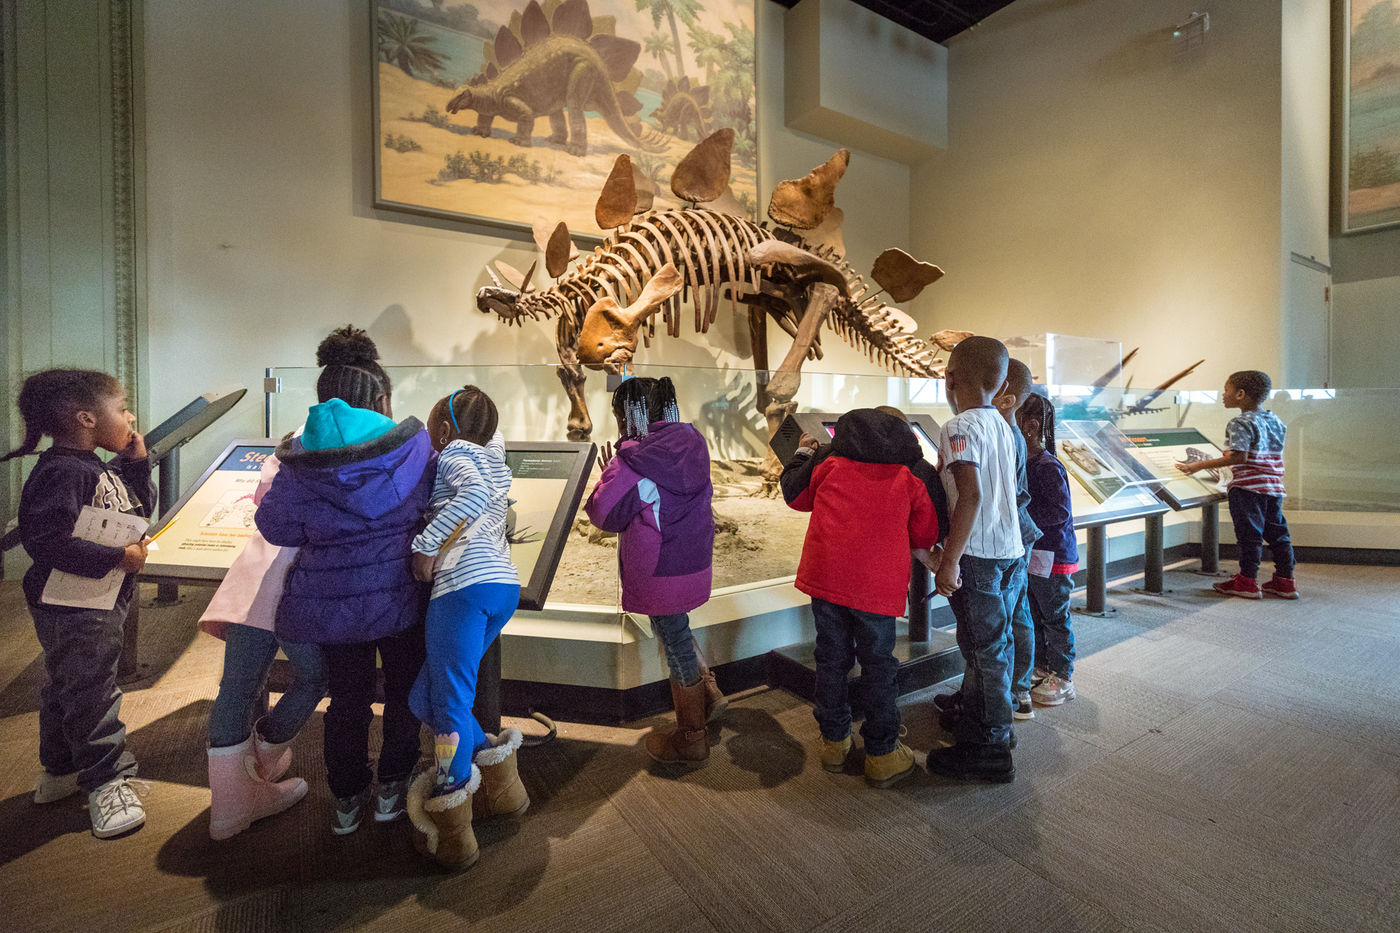 A group of young students gather around a stegosaurus fossil to read panels and look closely at the specimen. A mural of a stegosaurus hangs behind the fossil.